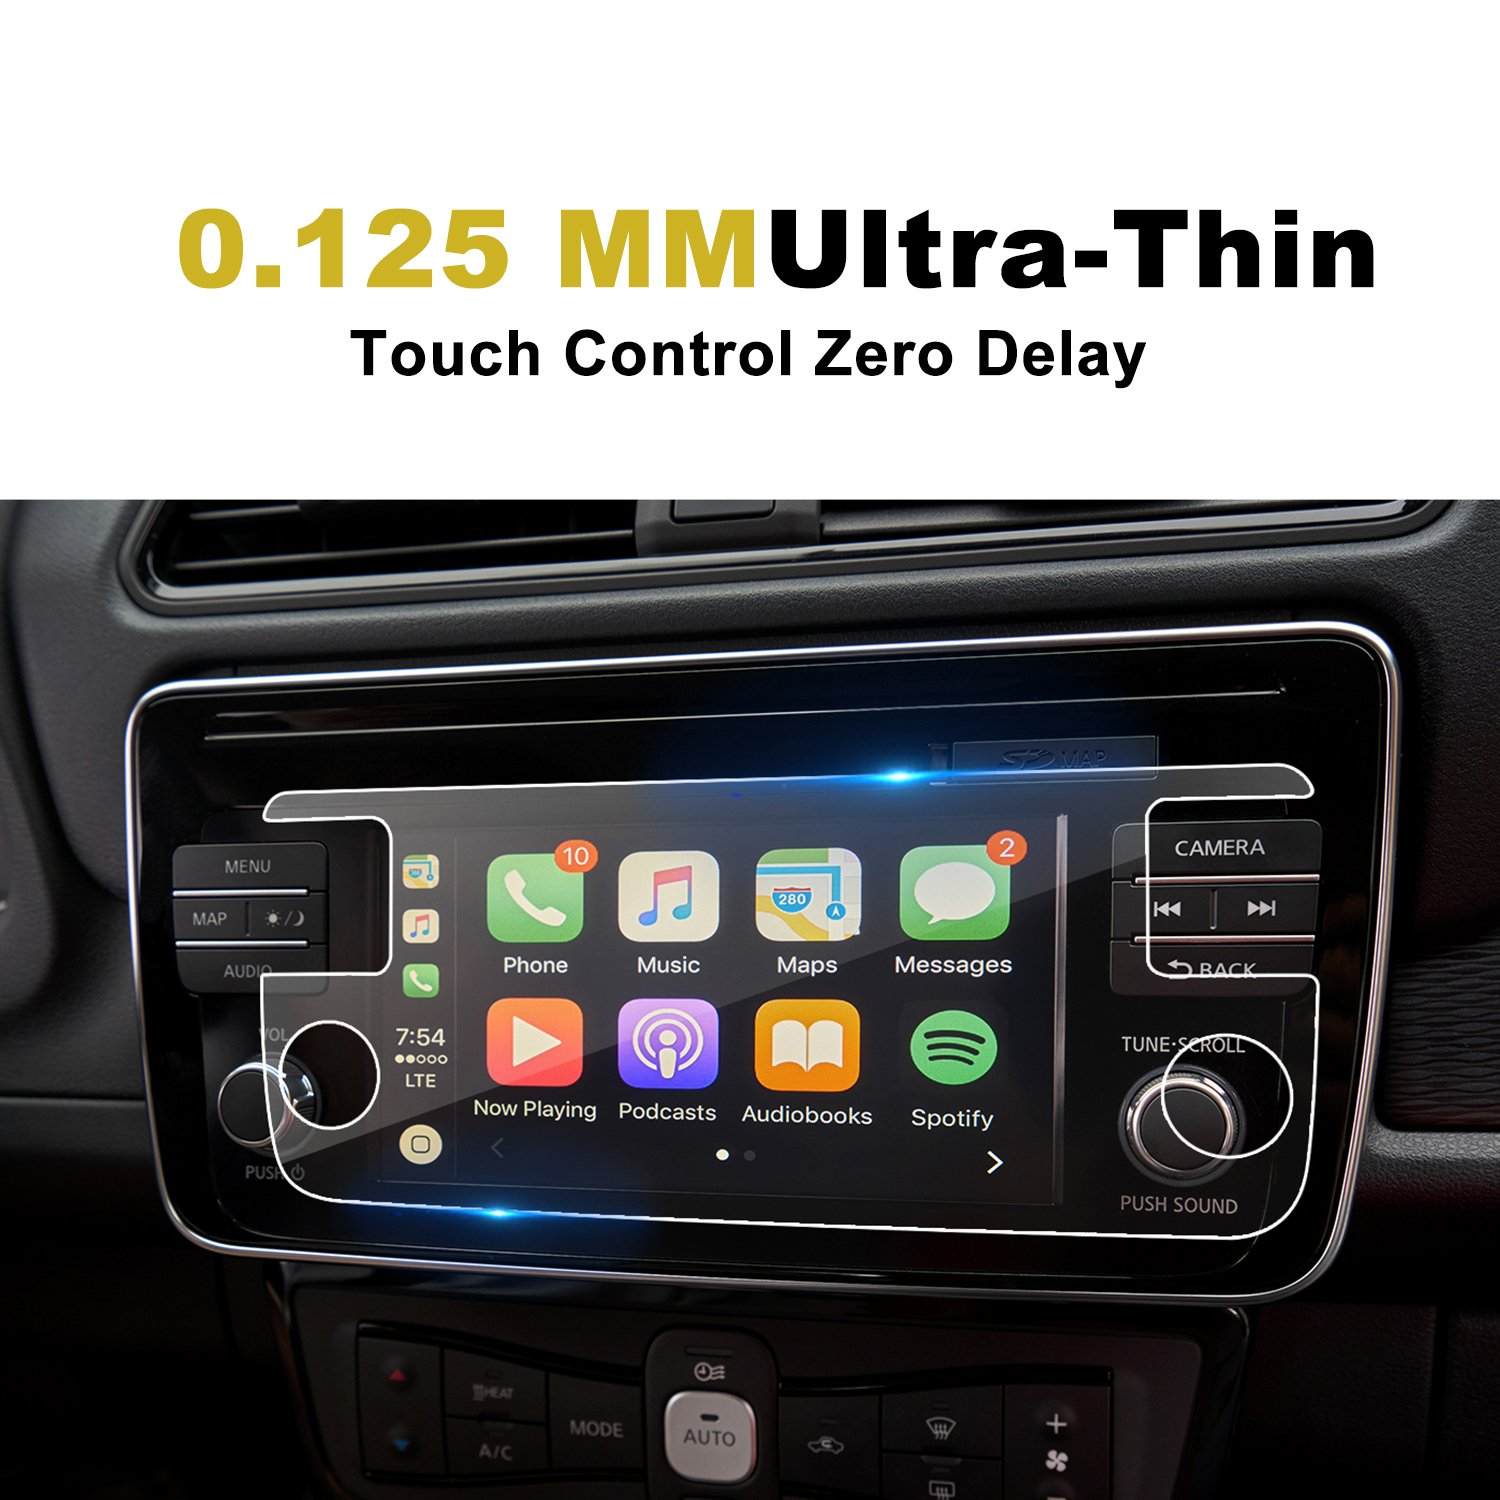 Infotainment Center Touch Display Screen Protector Anti-Glare High Clarity LiFan 2018 Nissan Leaf 7 Inch 2PCS LFOTPP 2018 Nissan Leaf ZE1 NissanConnect 7 Inch PET Car Navigation Screen Protector